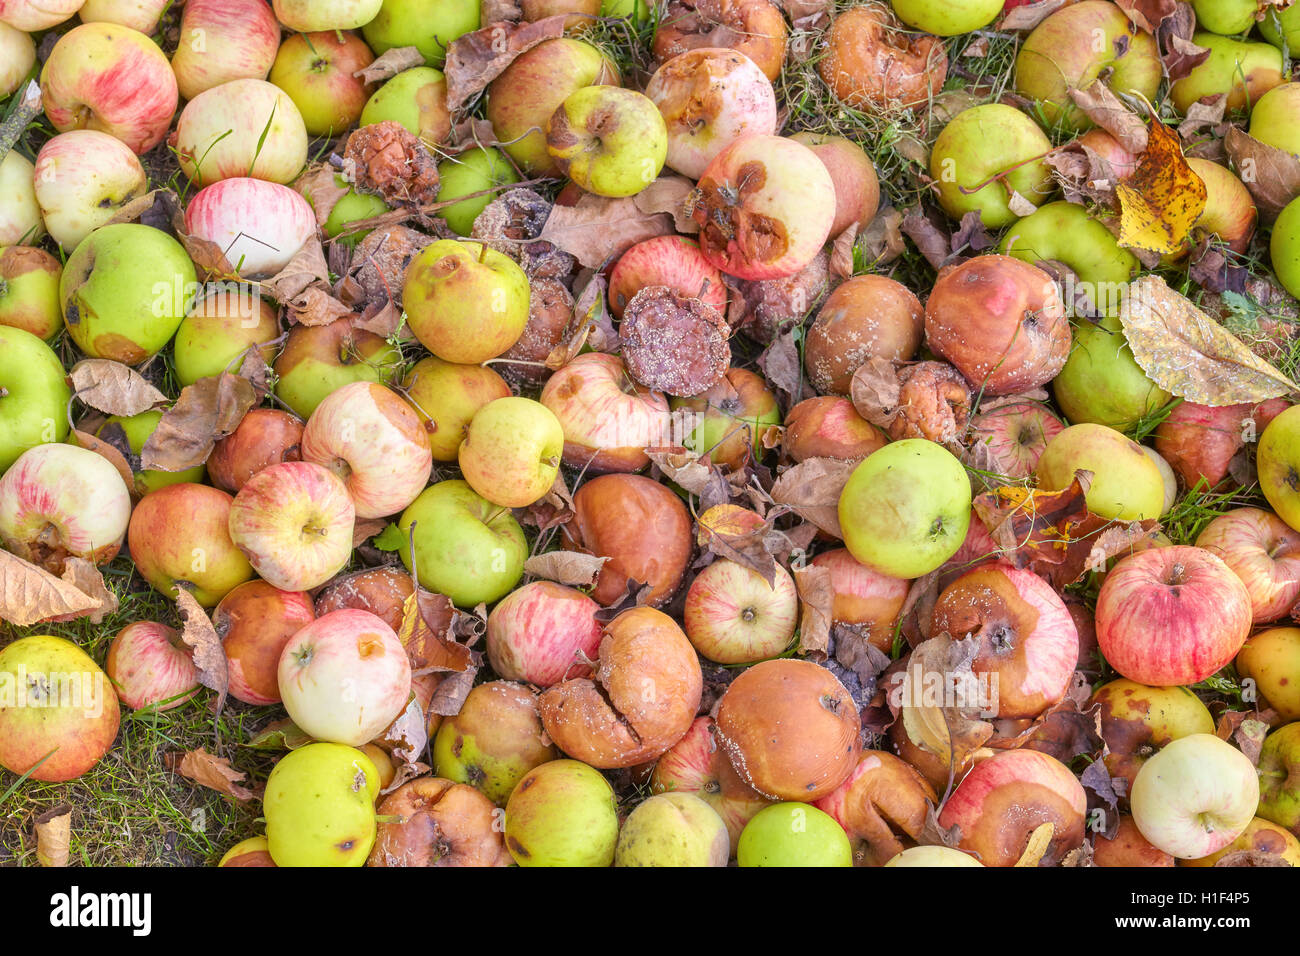 Picture of rotten apples in a garden. - Stock Image